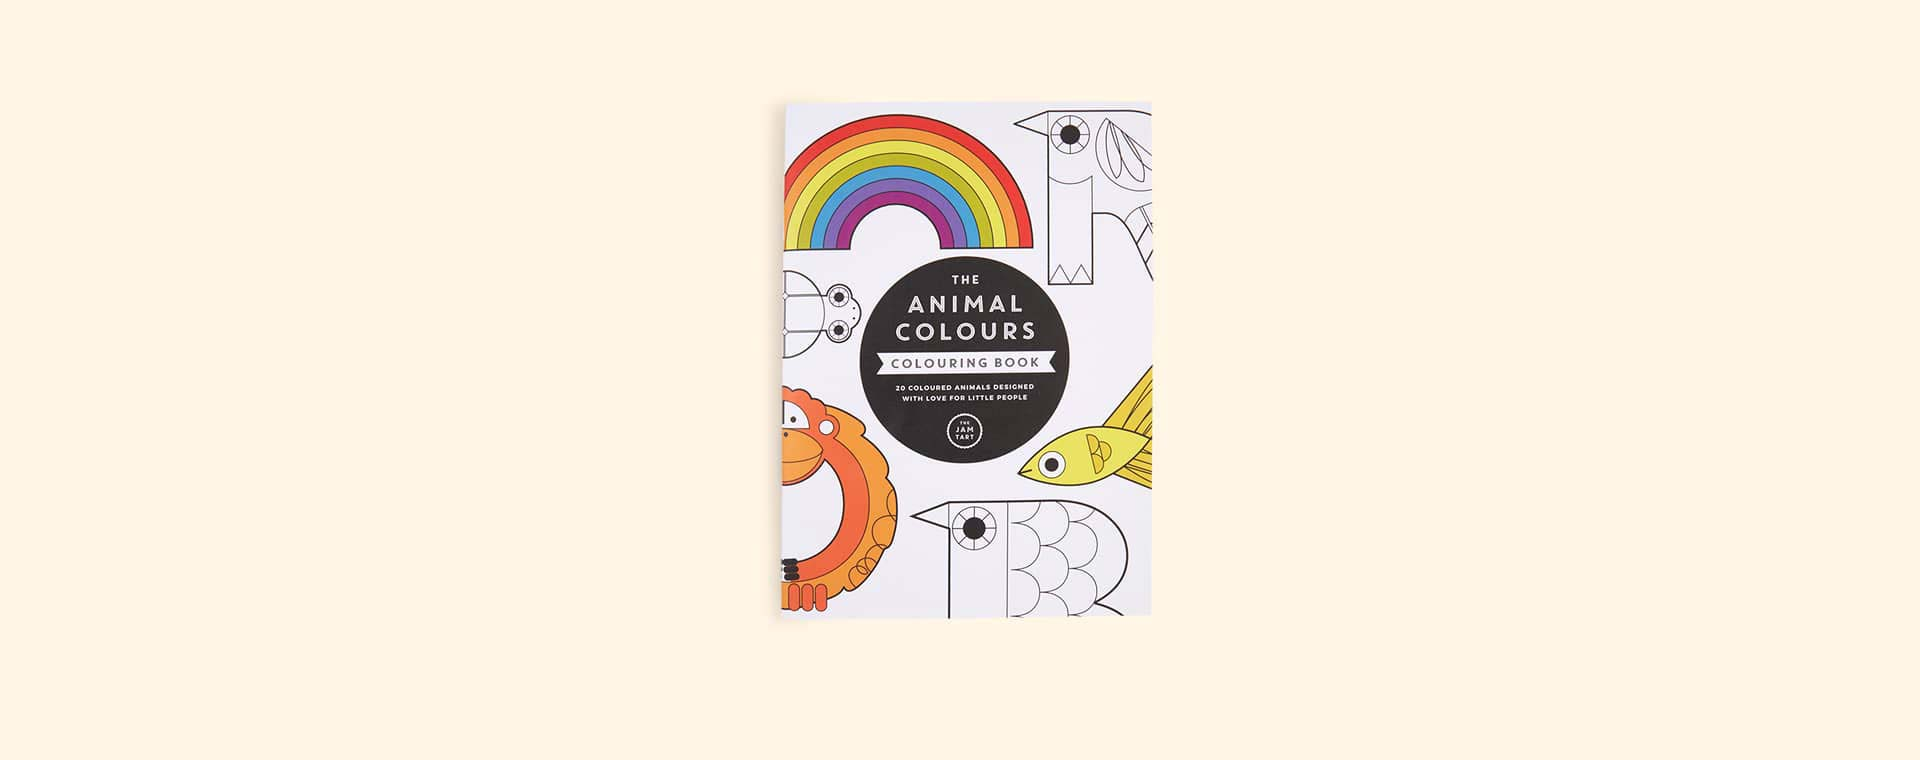 Buy The The Jam Tart The Animal Colours Colouring Book At Kidly Uk